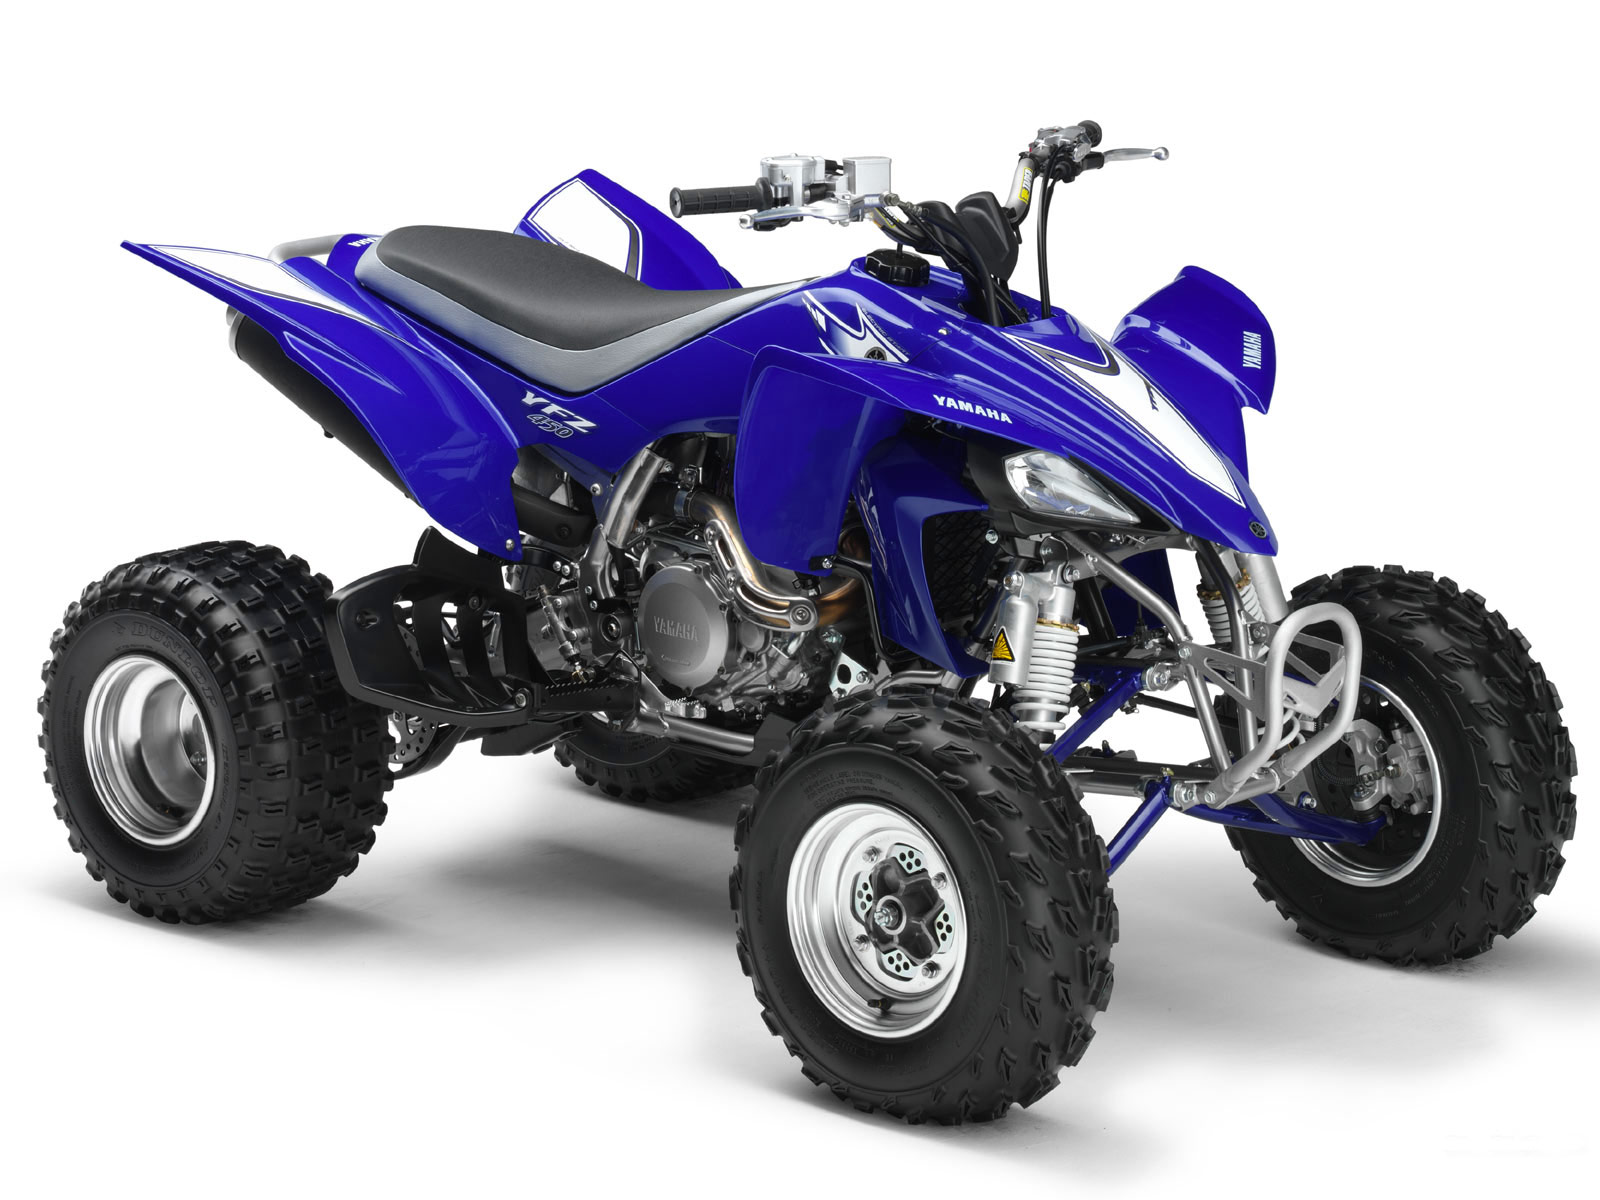 2007 yamaha yfz 450 pictures specs accident lawyers info. Black Bedroom Furniture Sets. Home Design Ideas